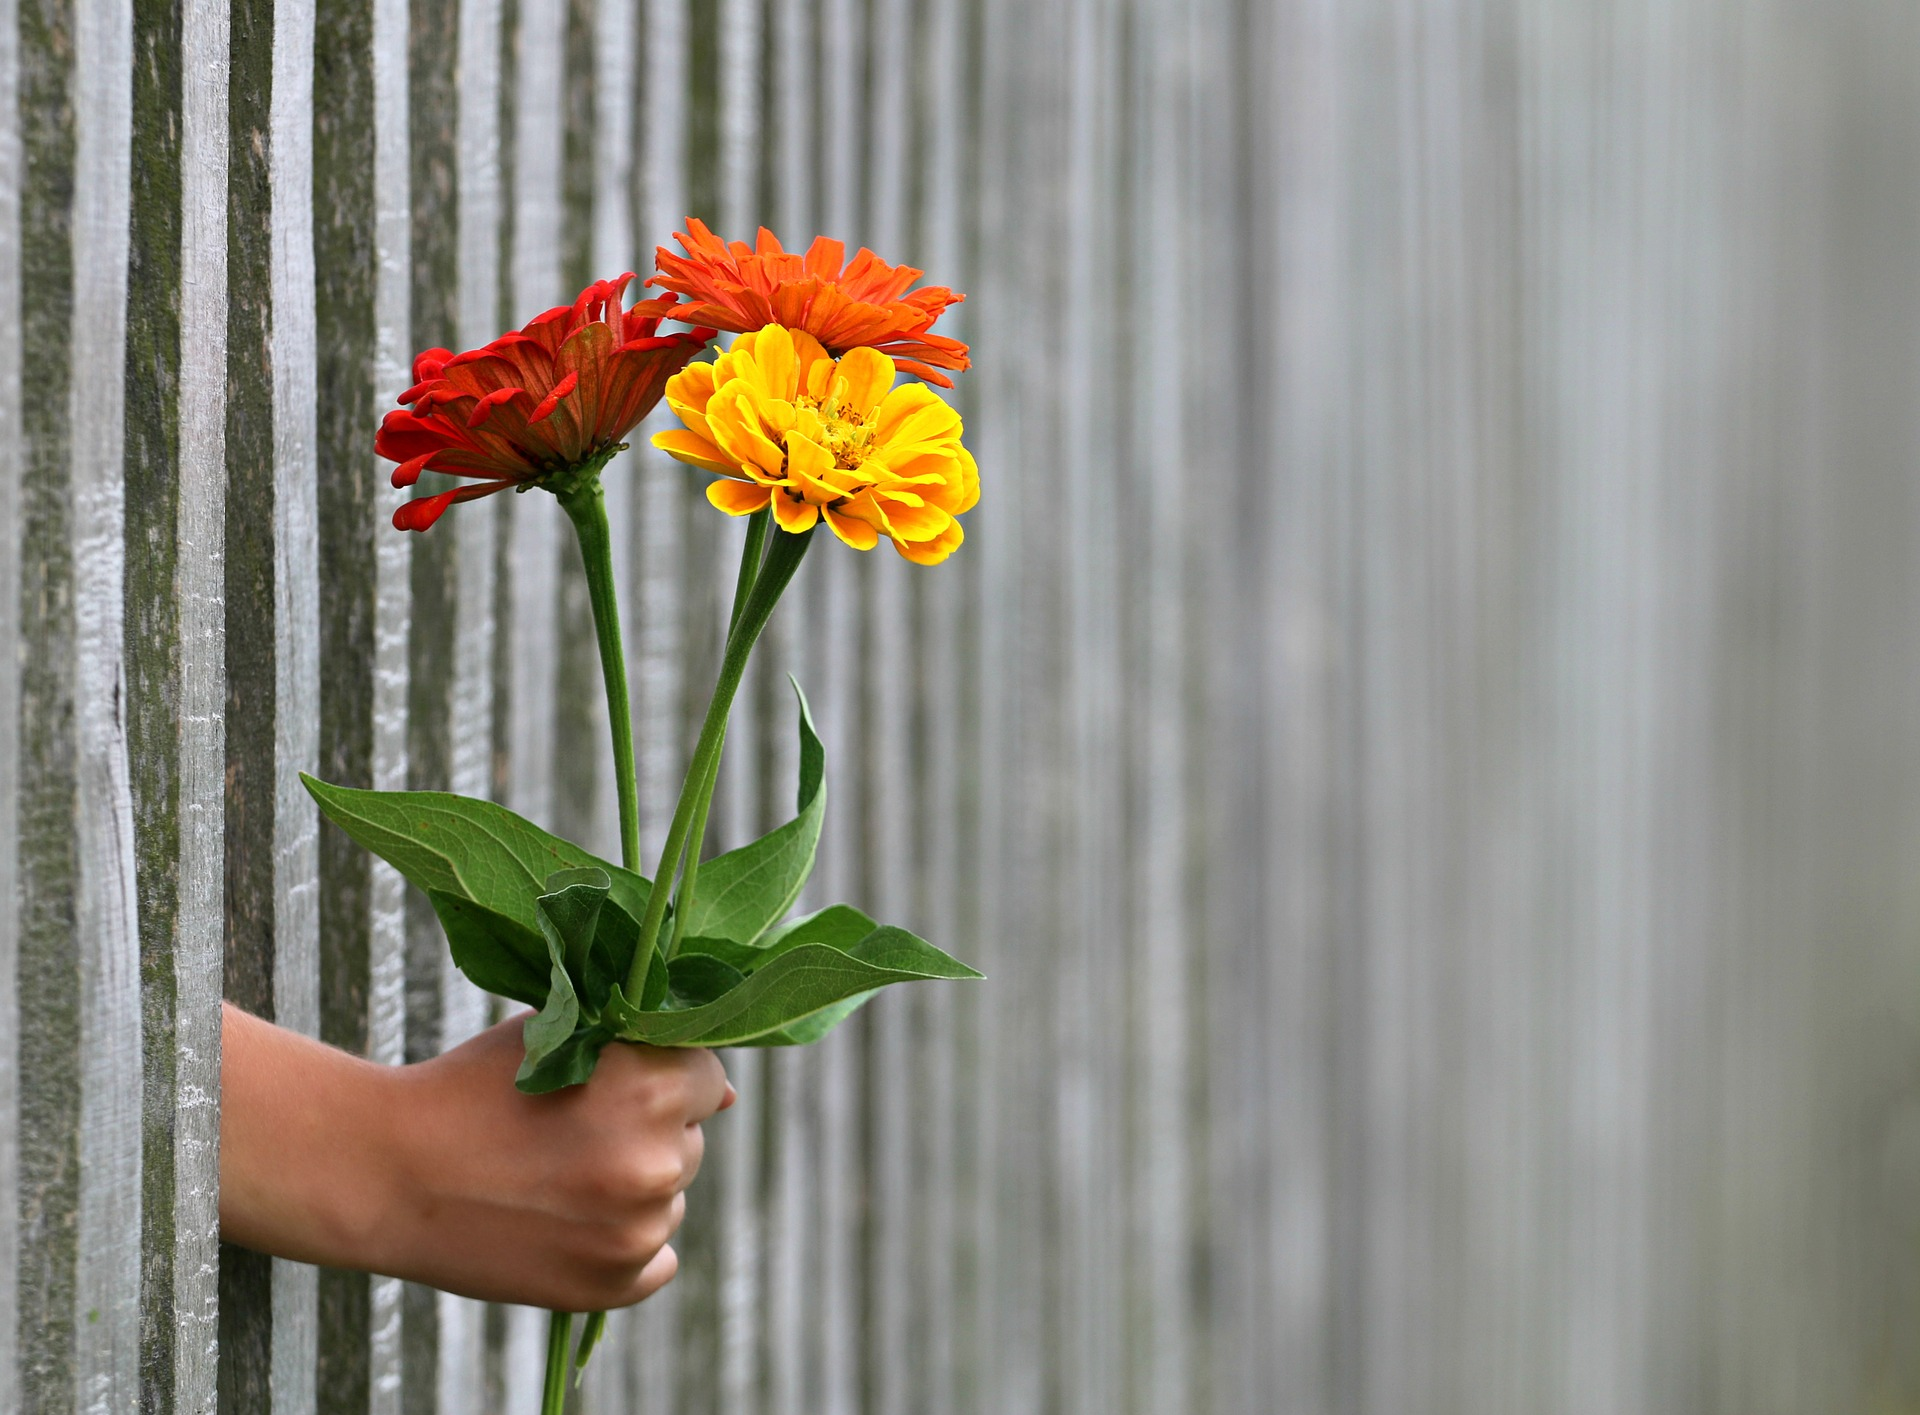 hands coming our of wall holding flowers